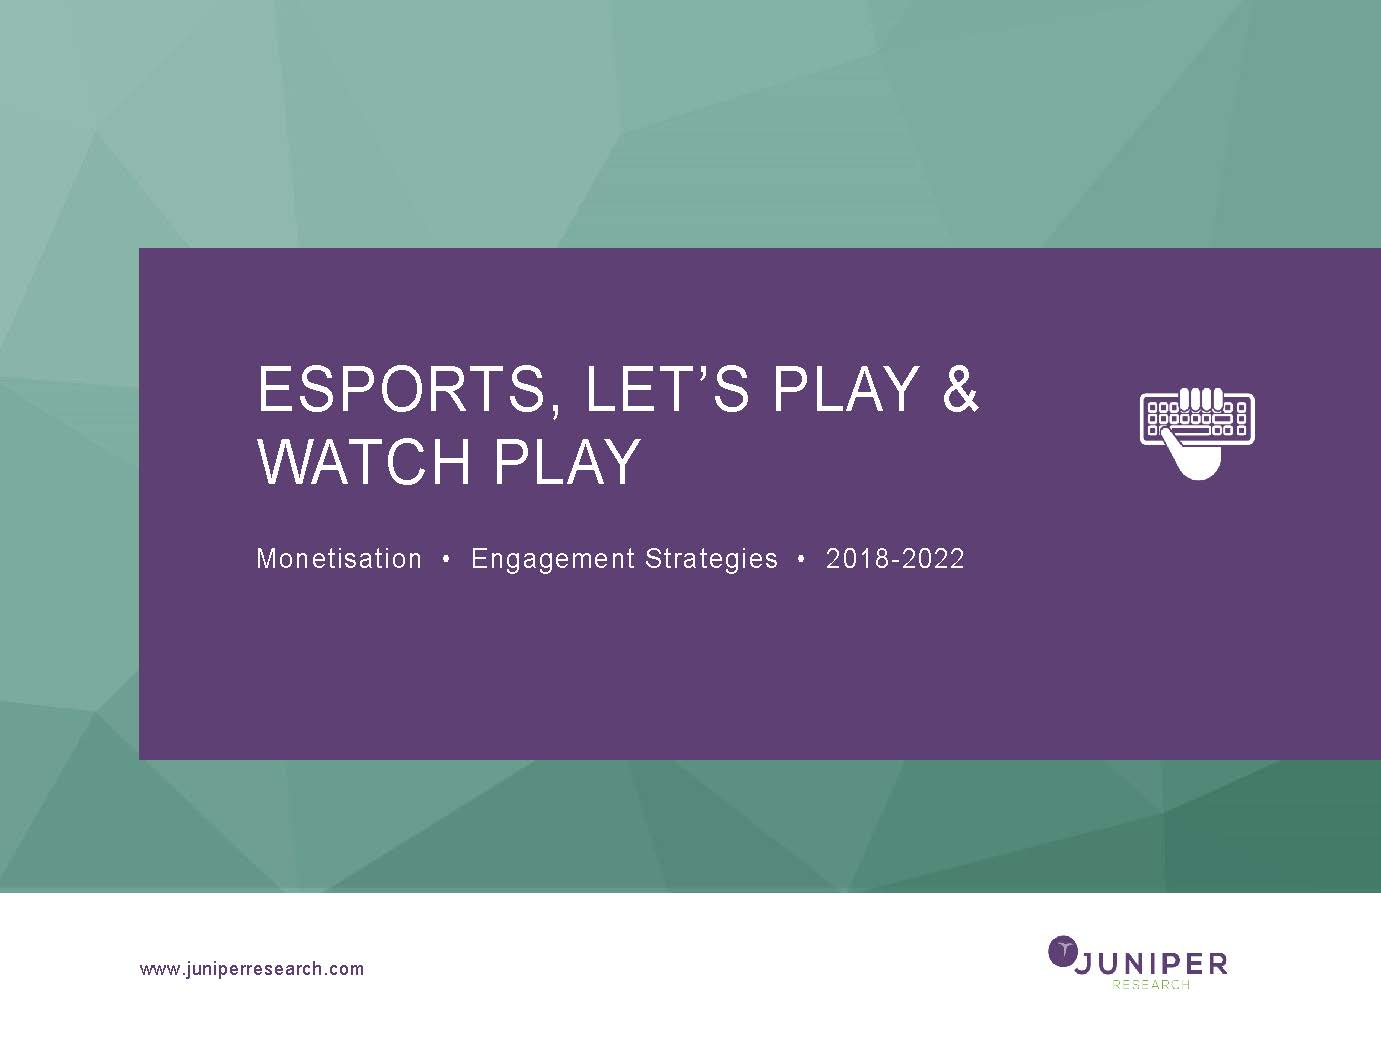 eSports, Let's Play & Watch Play